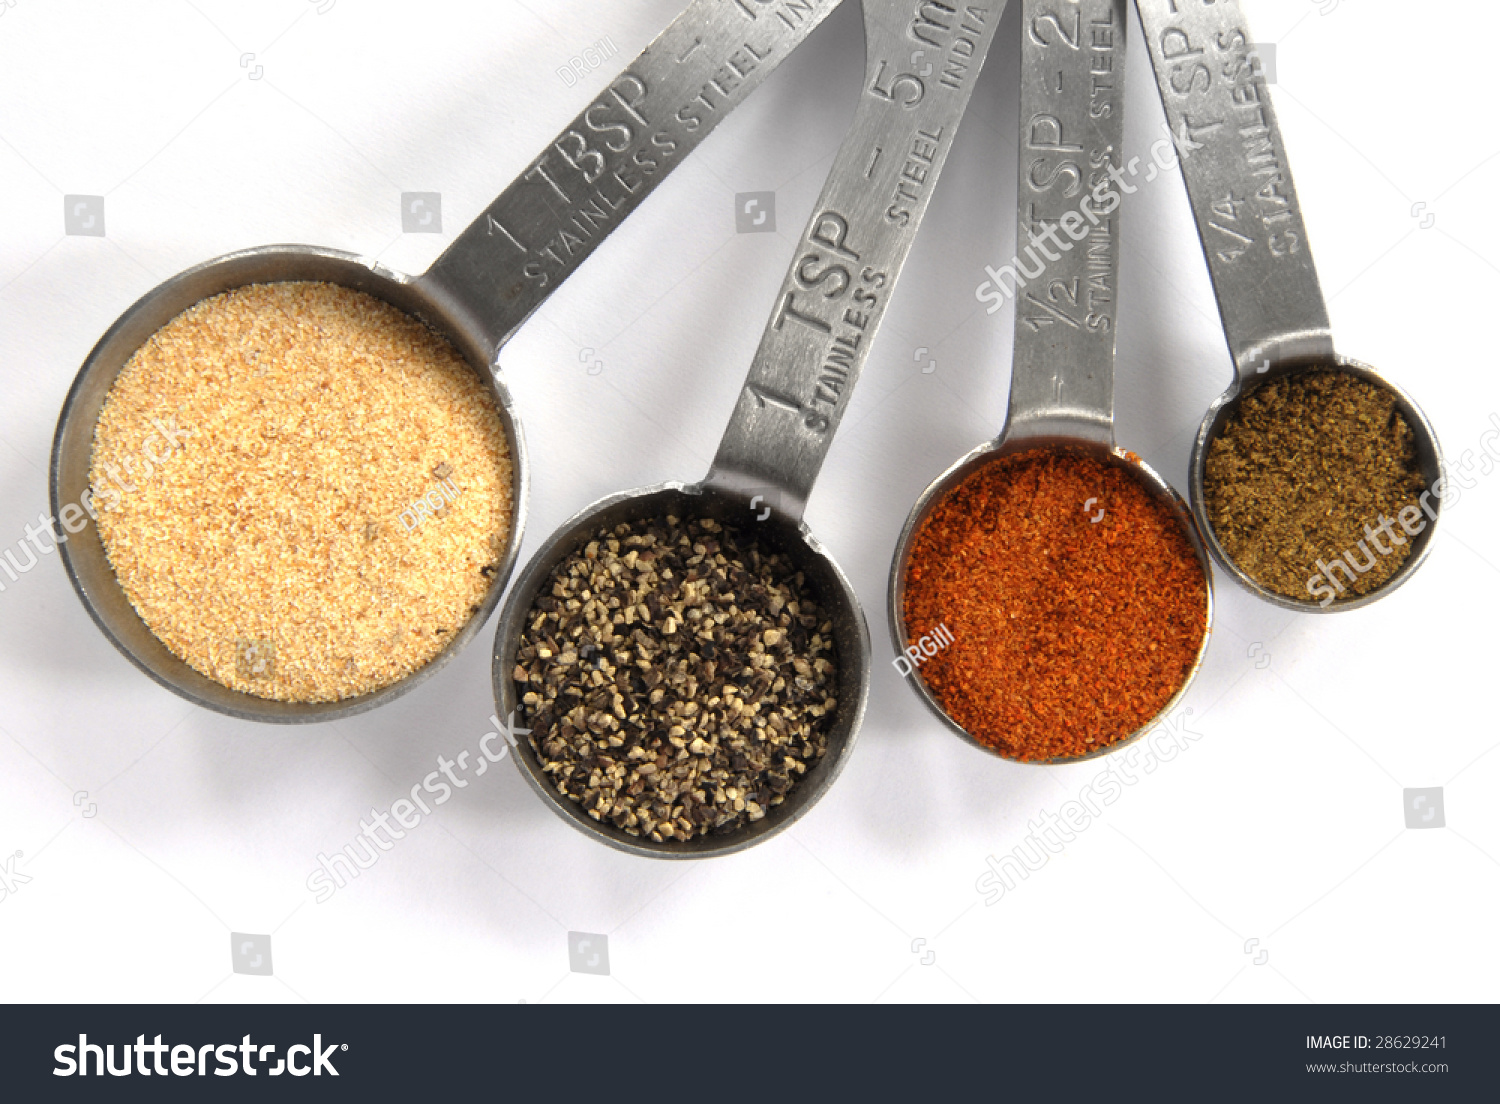 One tablespoon one teaspoon half teaspoon stock photo for 1 table spoon to oz